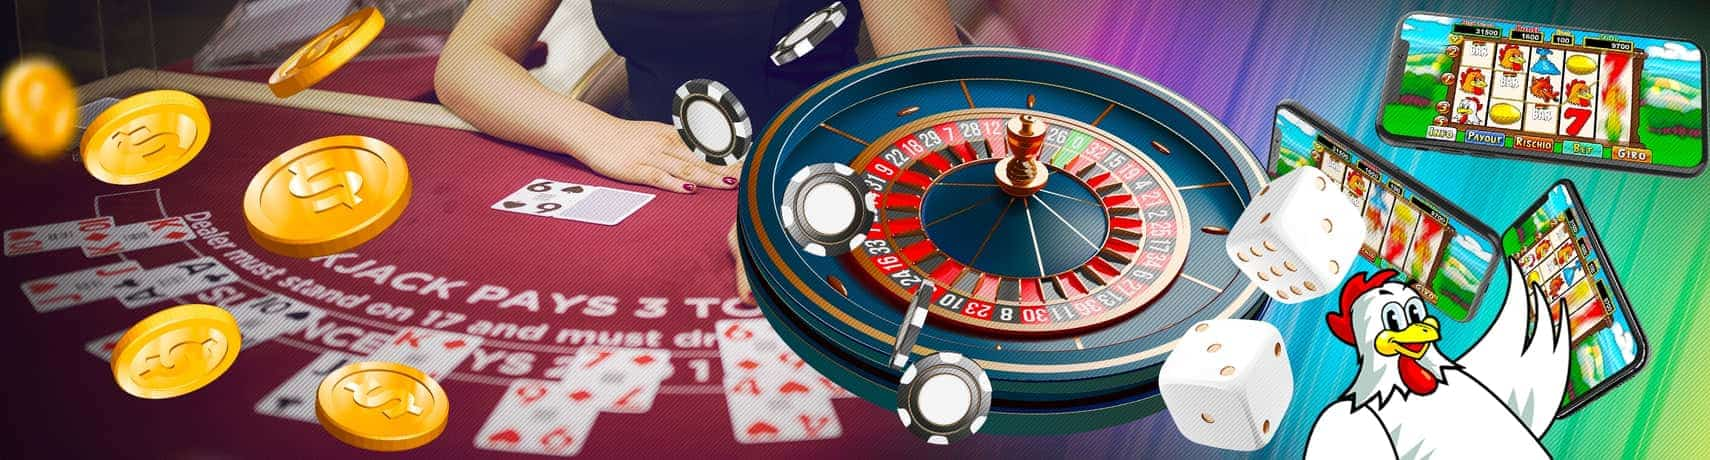 Normativa in vigore per i casino in Croazia